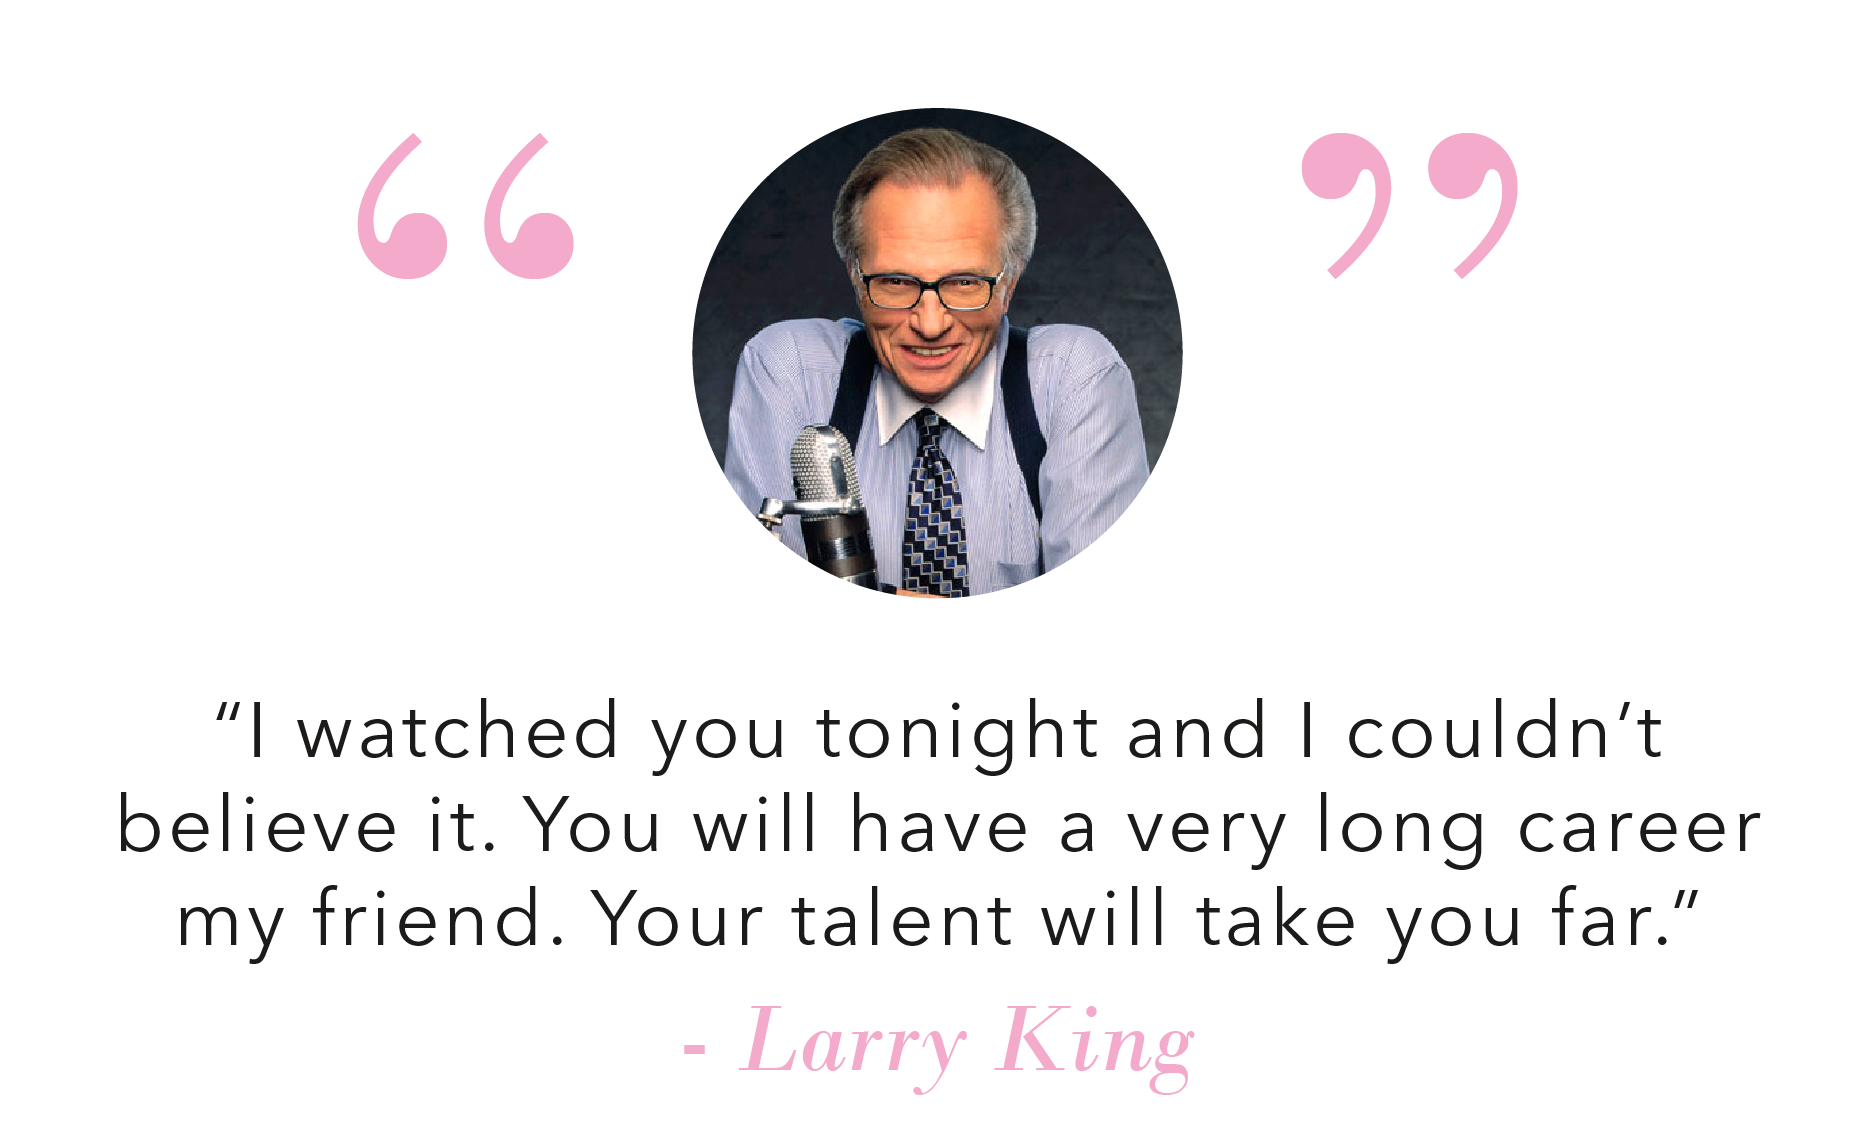 testimonials_Llarry King.png